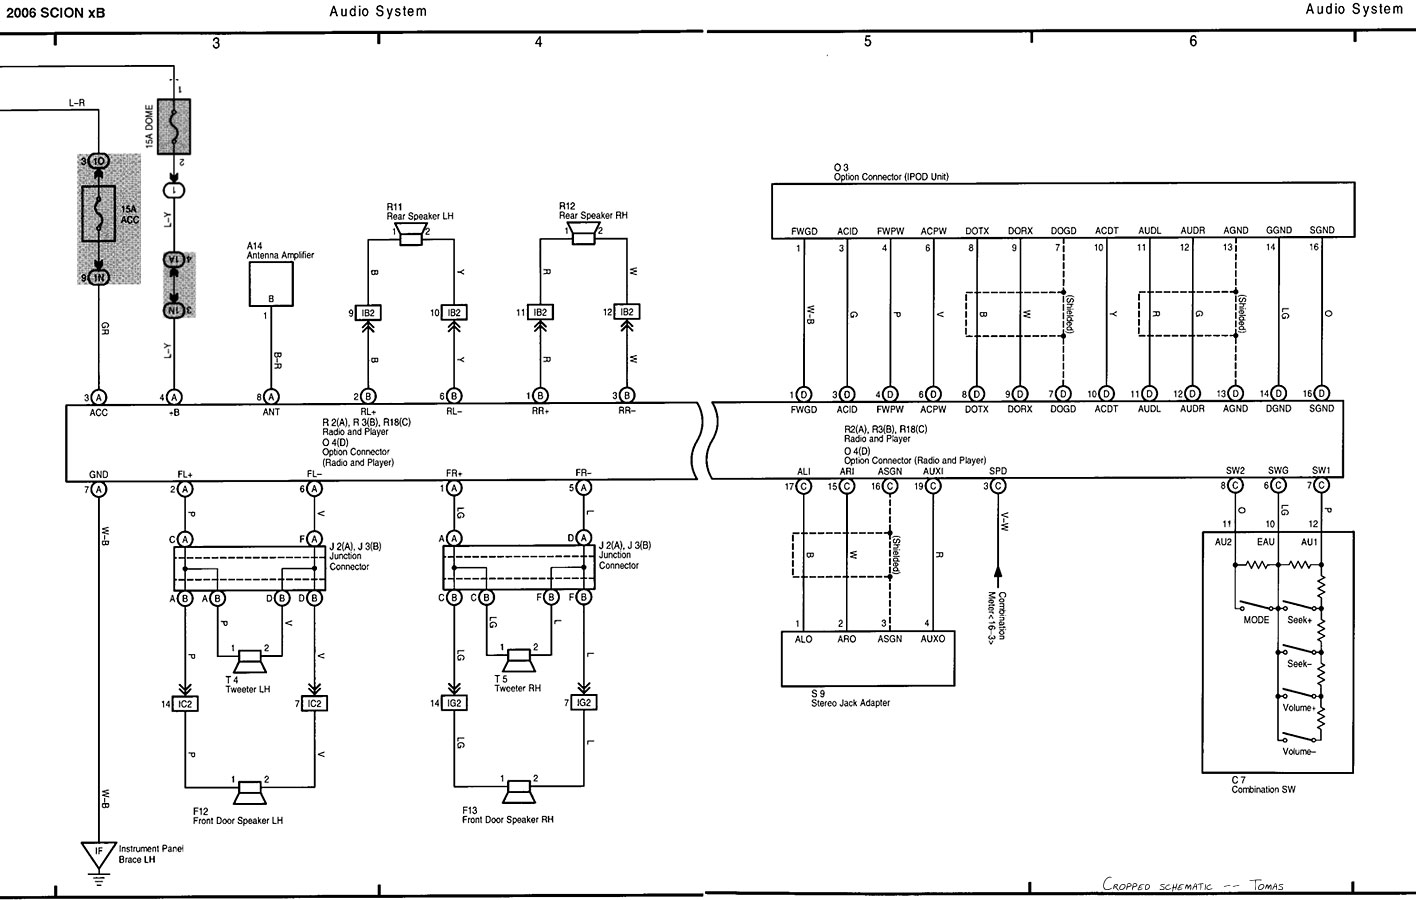 wiring diagrams for scion tc wiring diagram for light switch u2022 rh prestonfarmmotors co show wiring diagram of bauer b236b oven show wiring diagram for intermatic ca3570